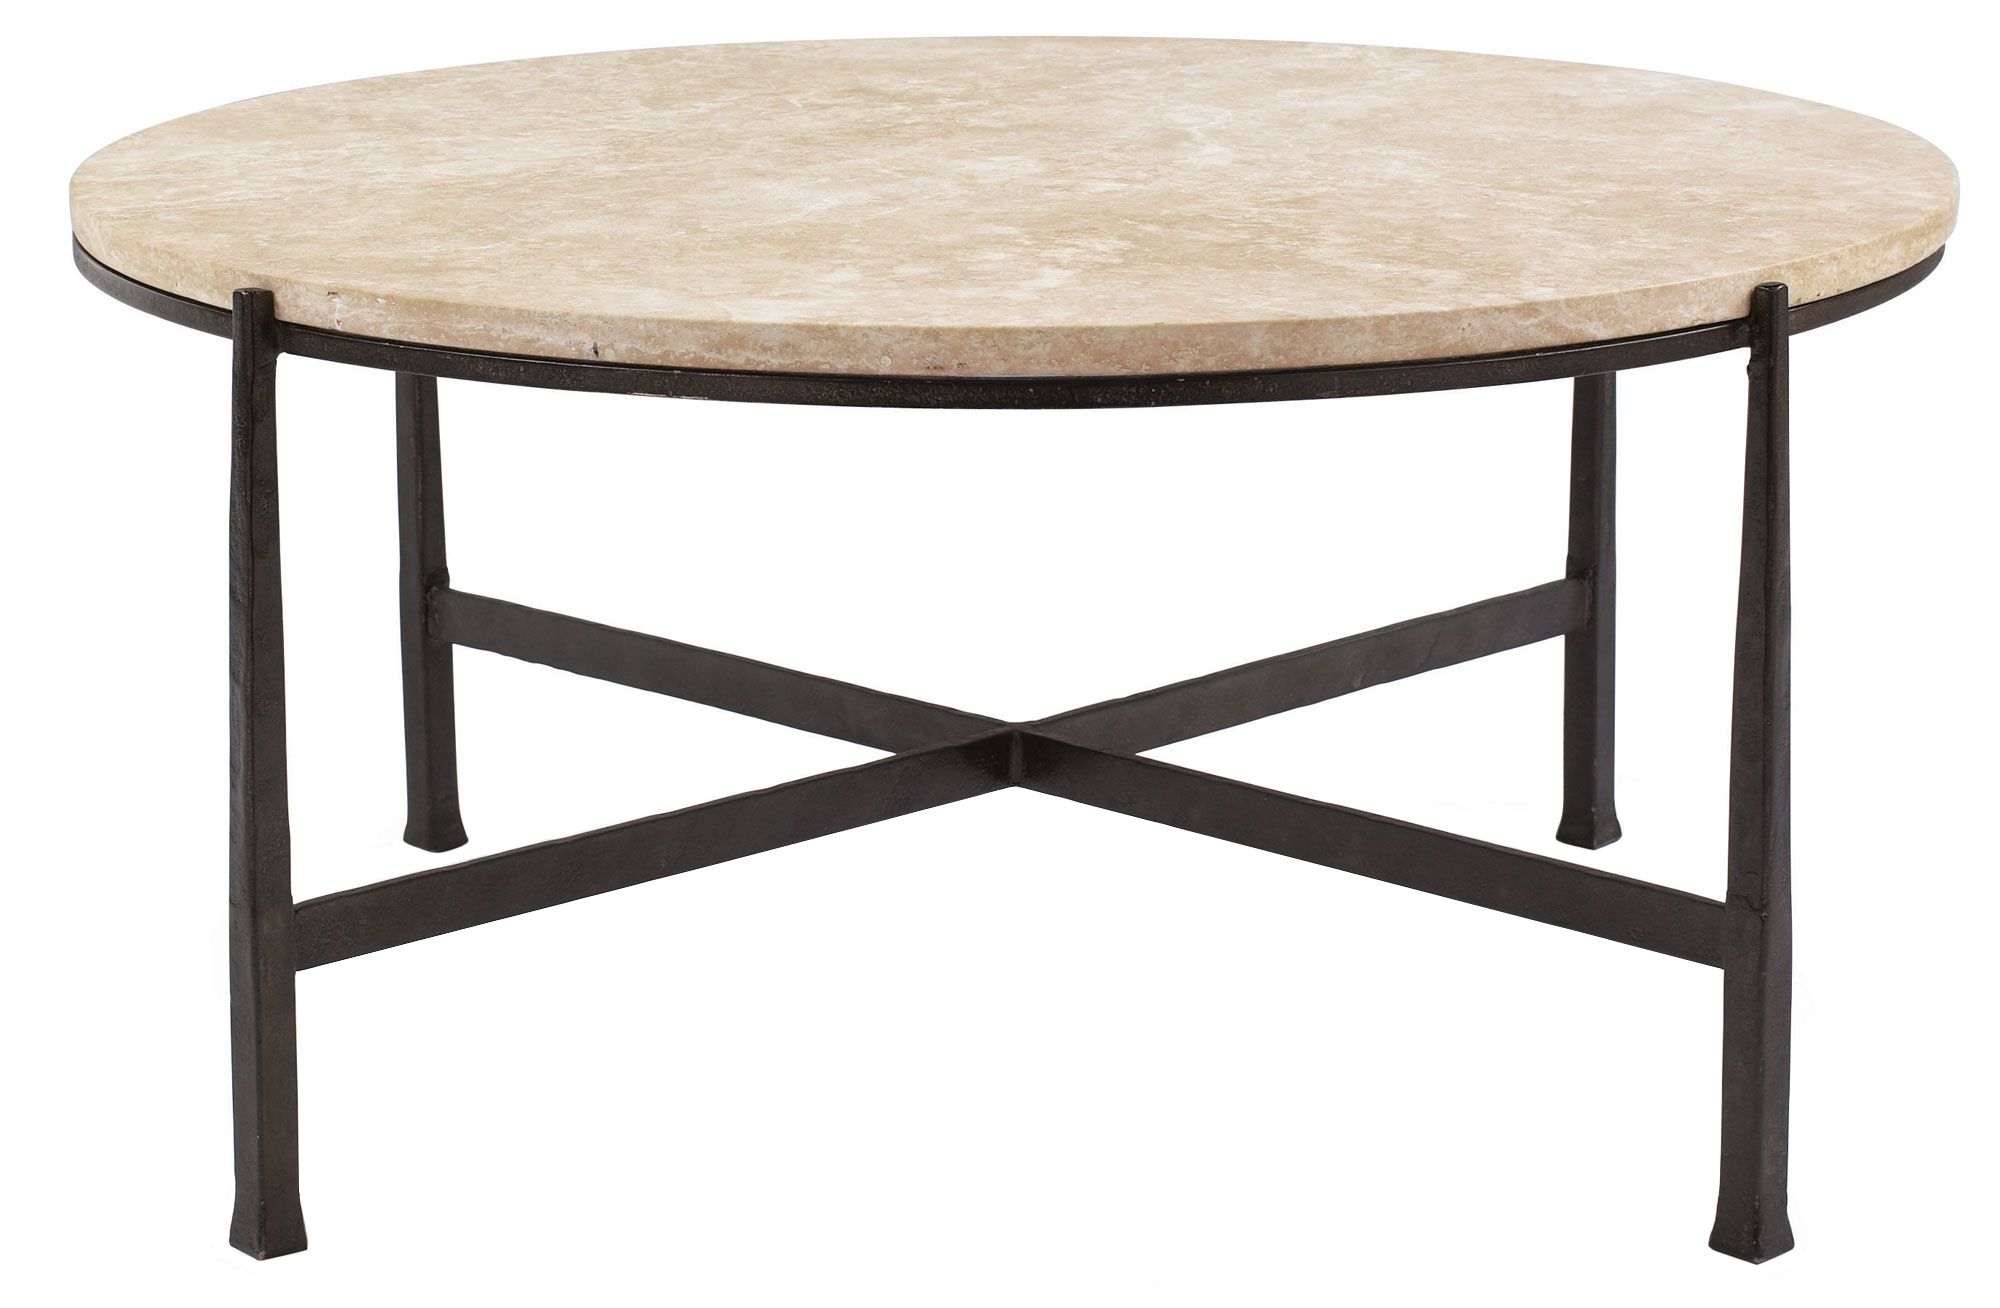 Round Metal Cocktail Table Base And Stone Top  Bernhardt 391319 Entrancing Stone Top Dining Room Tables Decorating Design